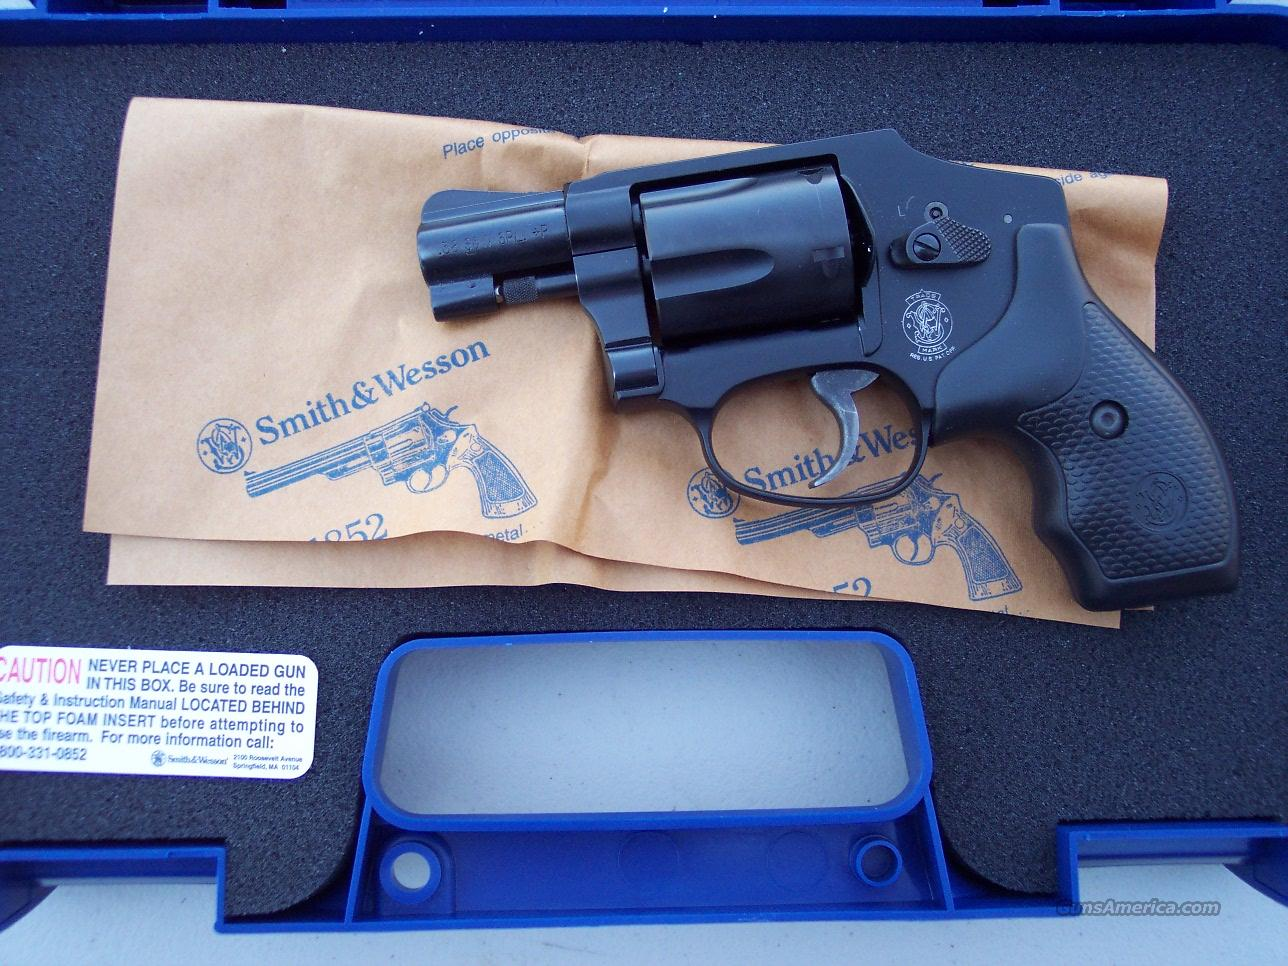 Smith & Wesson 442 Centennial Airweight NEW  Guns > Pistols > Smith & Wesson Revolvers > Pocket Pistols